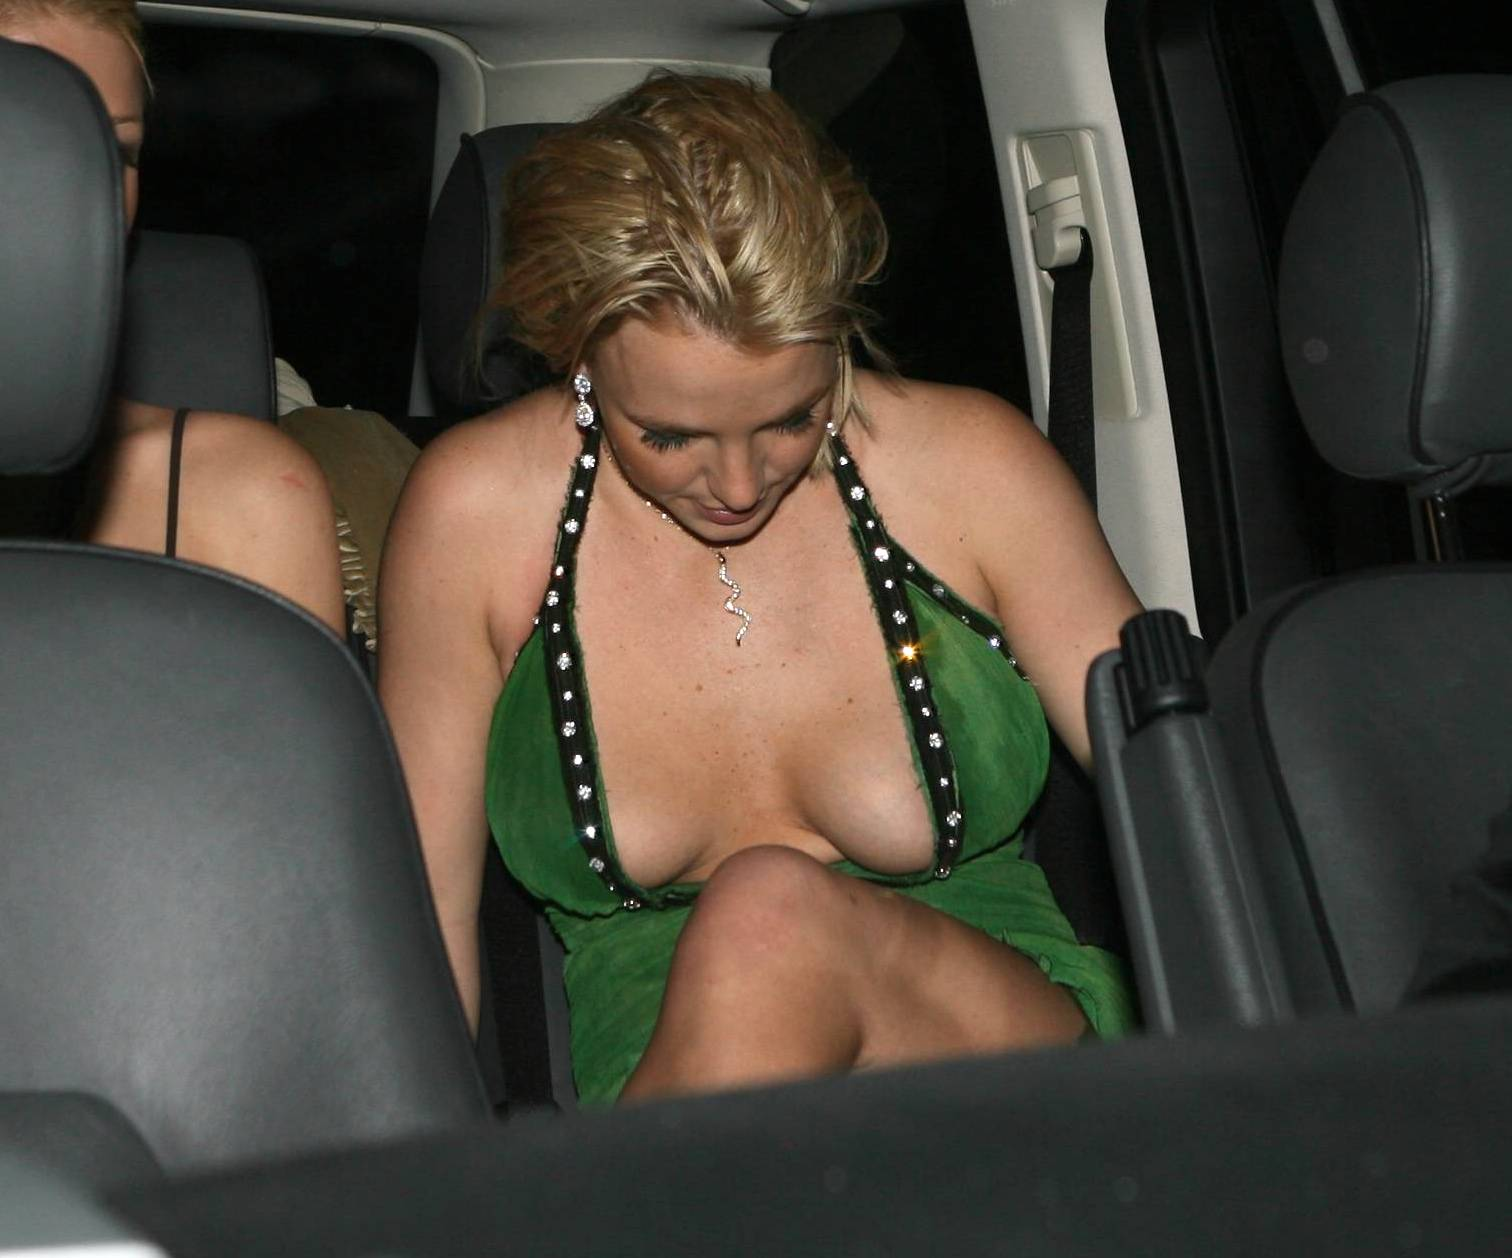 paris hilton and britney spears naked jpg 853x1280